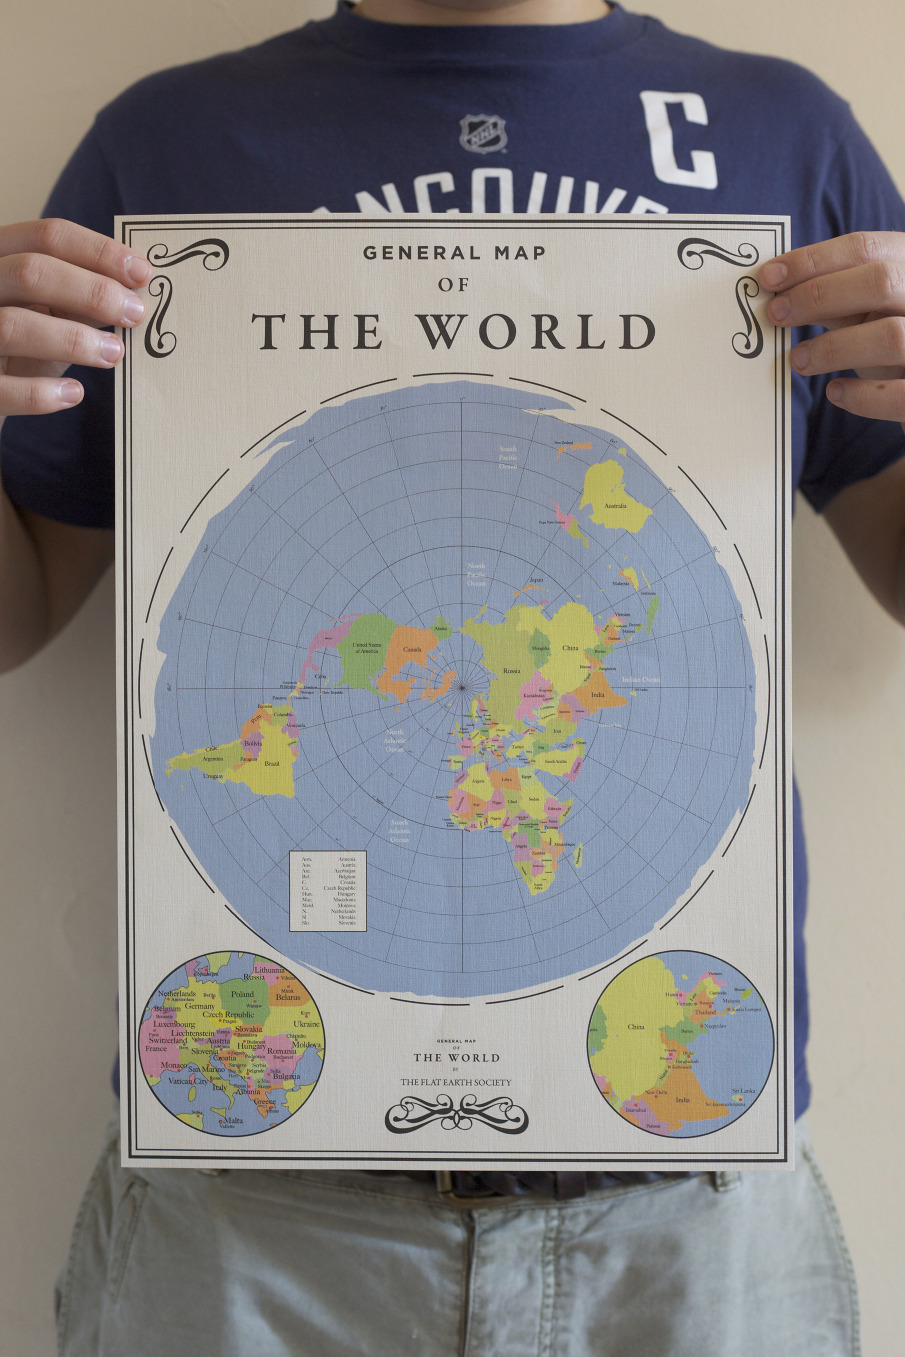 Flat earth society max anastasi its beliefs i produced a promotional poster and fold out map of the world as seen by the society this was produced in poster and fold flat map form gumiabroncs Choice Image